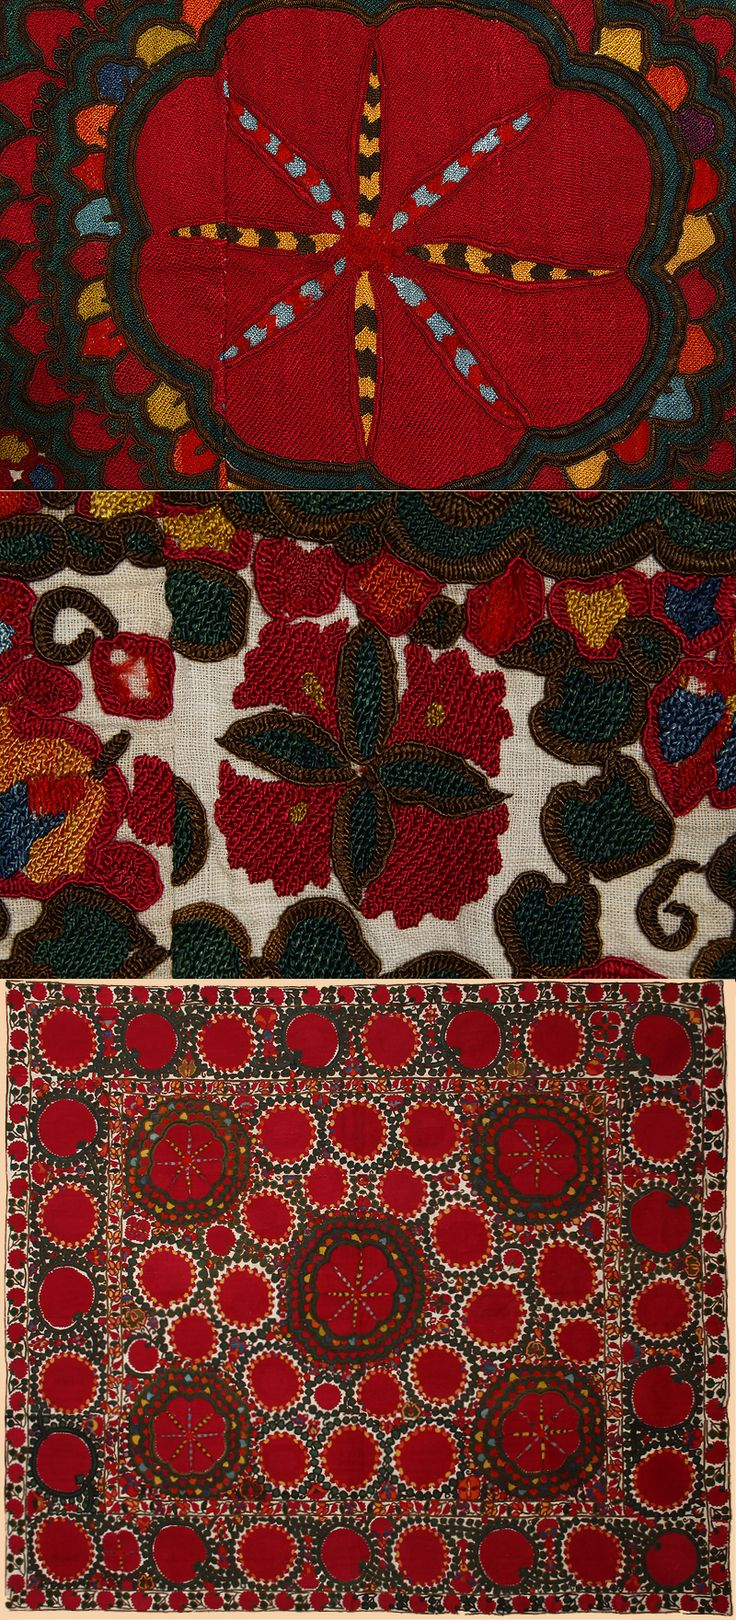 Antique Central Asian Suzani. Silk Embroidery on Cotton Circa 1870